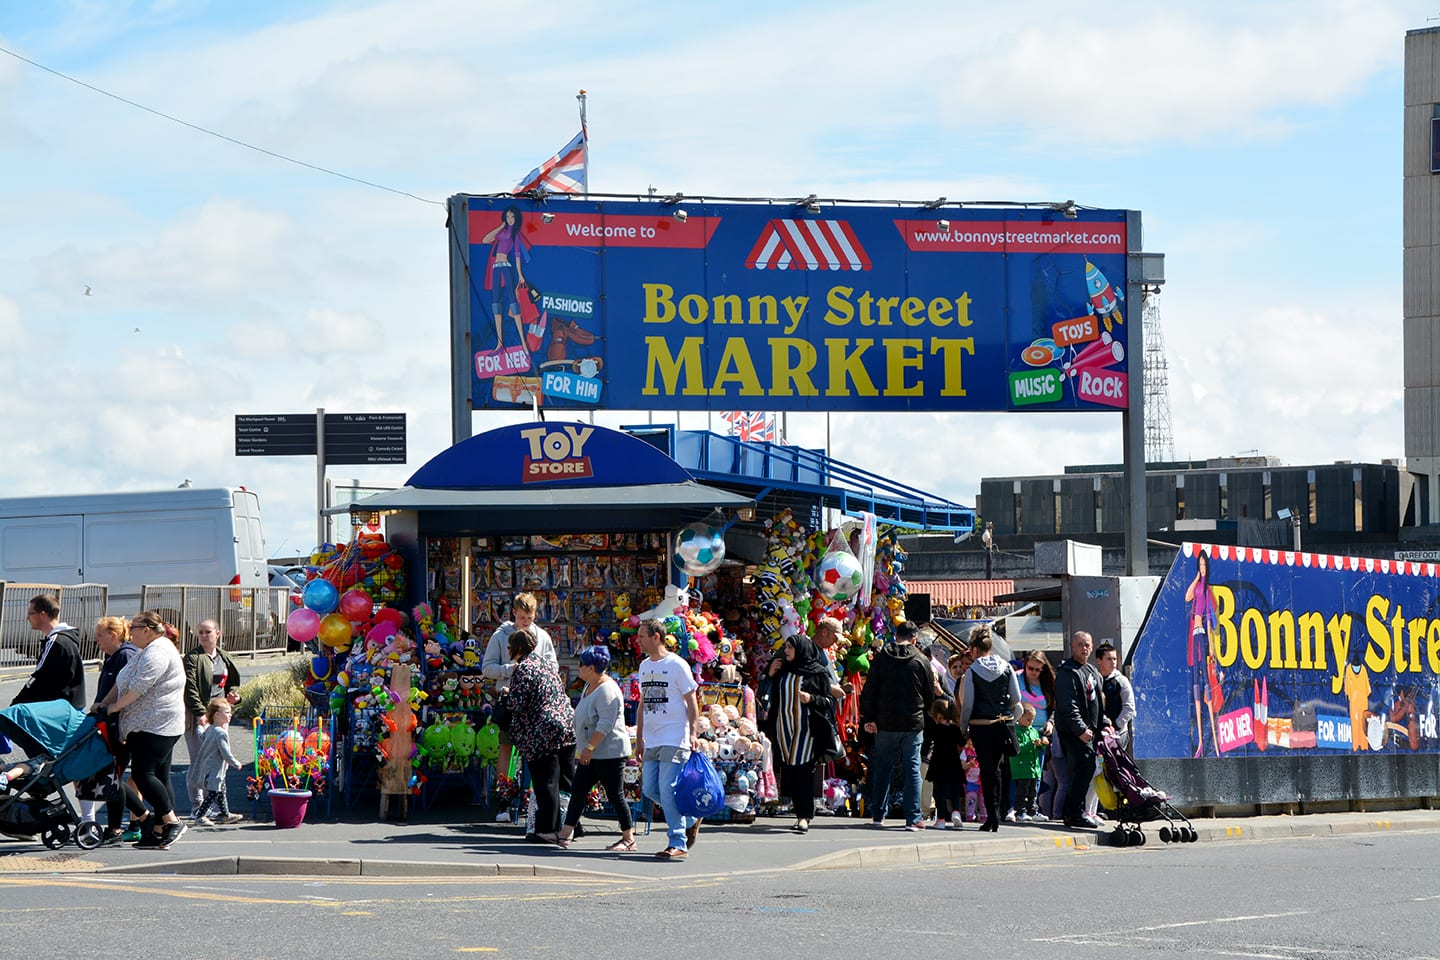 Bonny Street Market in Blackpool Town Centre